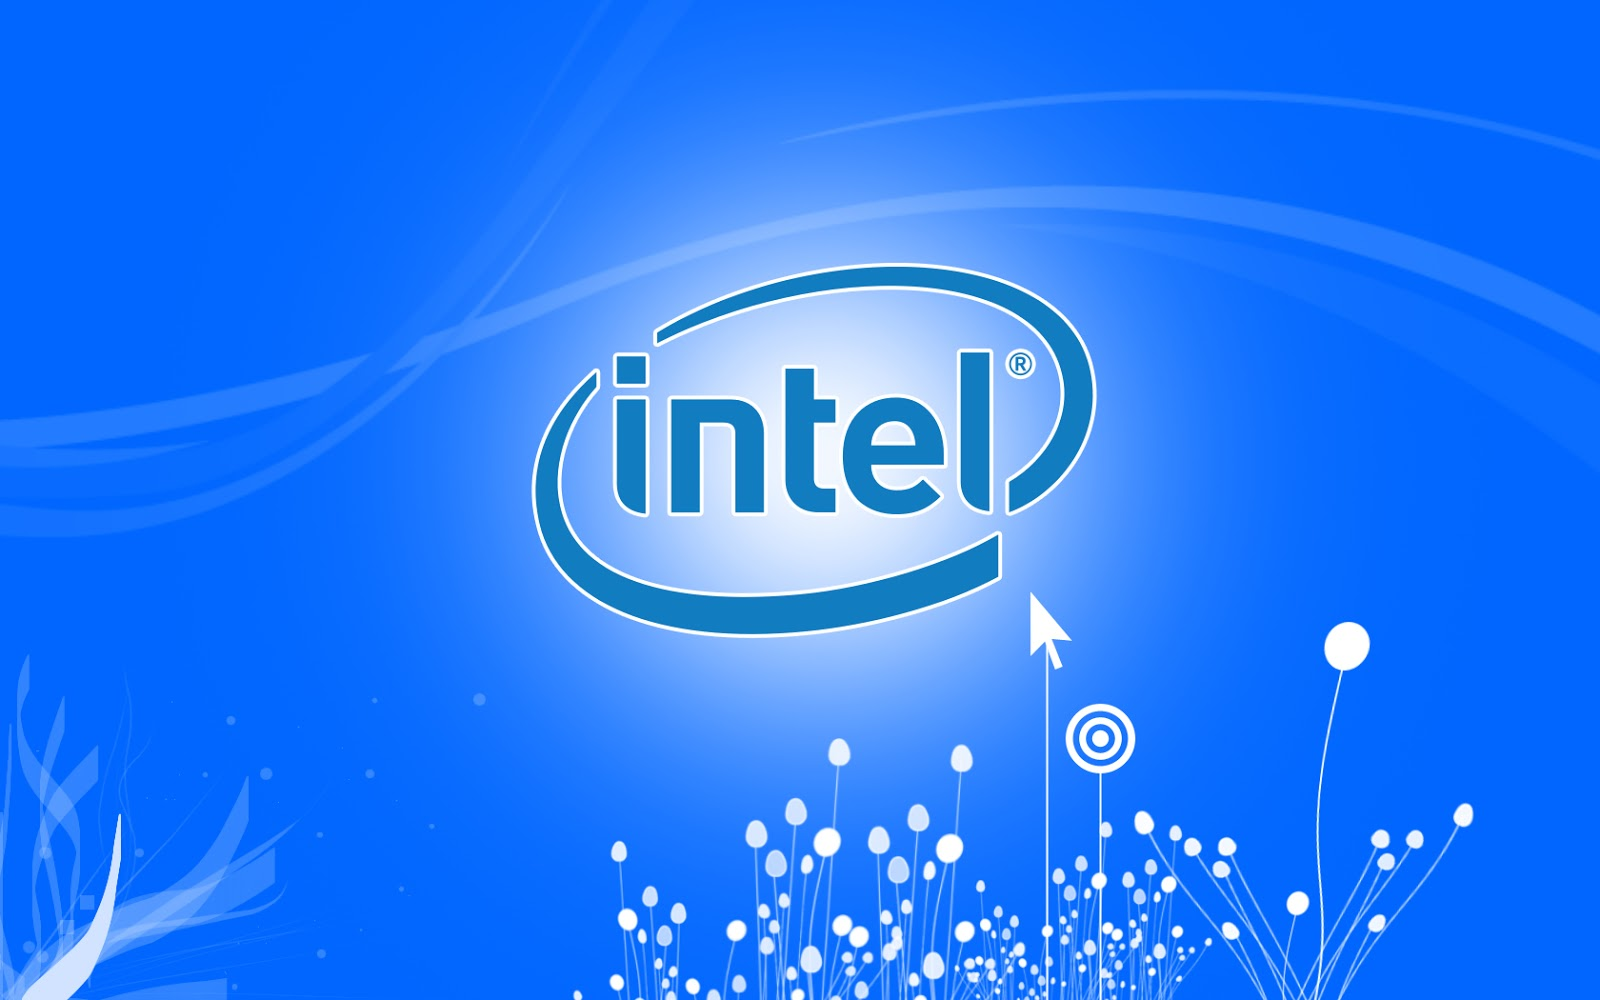 intel corporation 133k tweets • 3,311 photos/videos • 484m followers check out the latest tweets from intel (@intel.